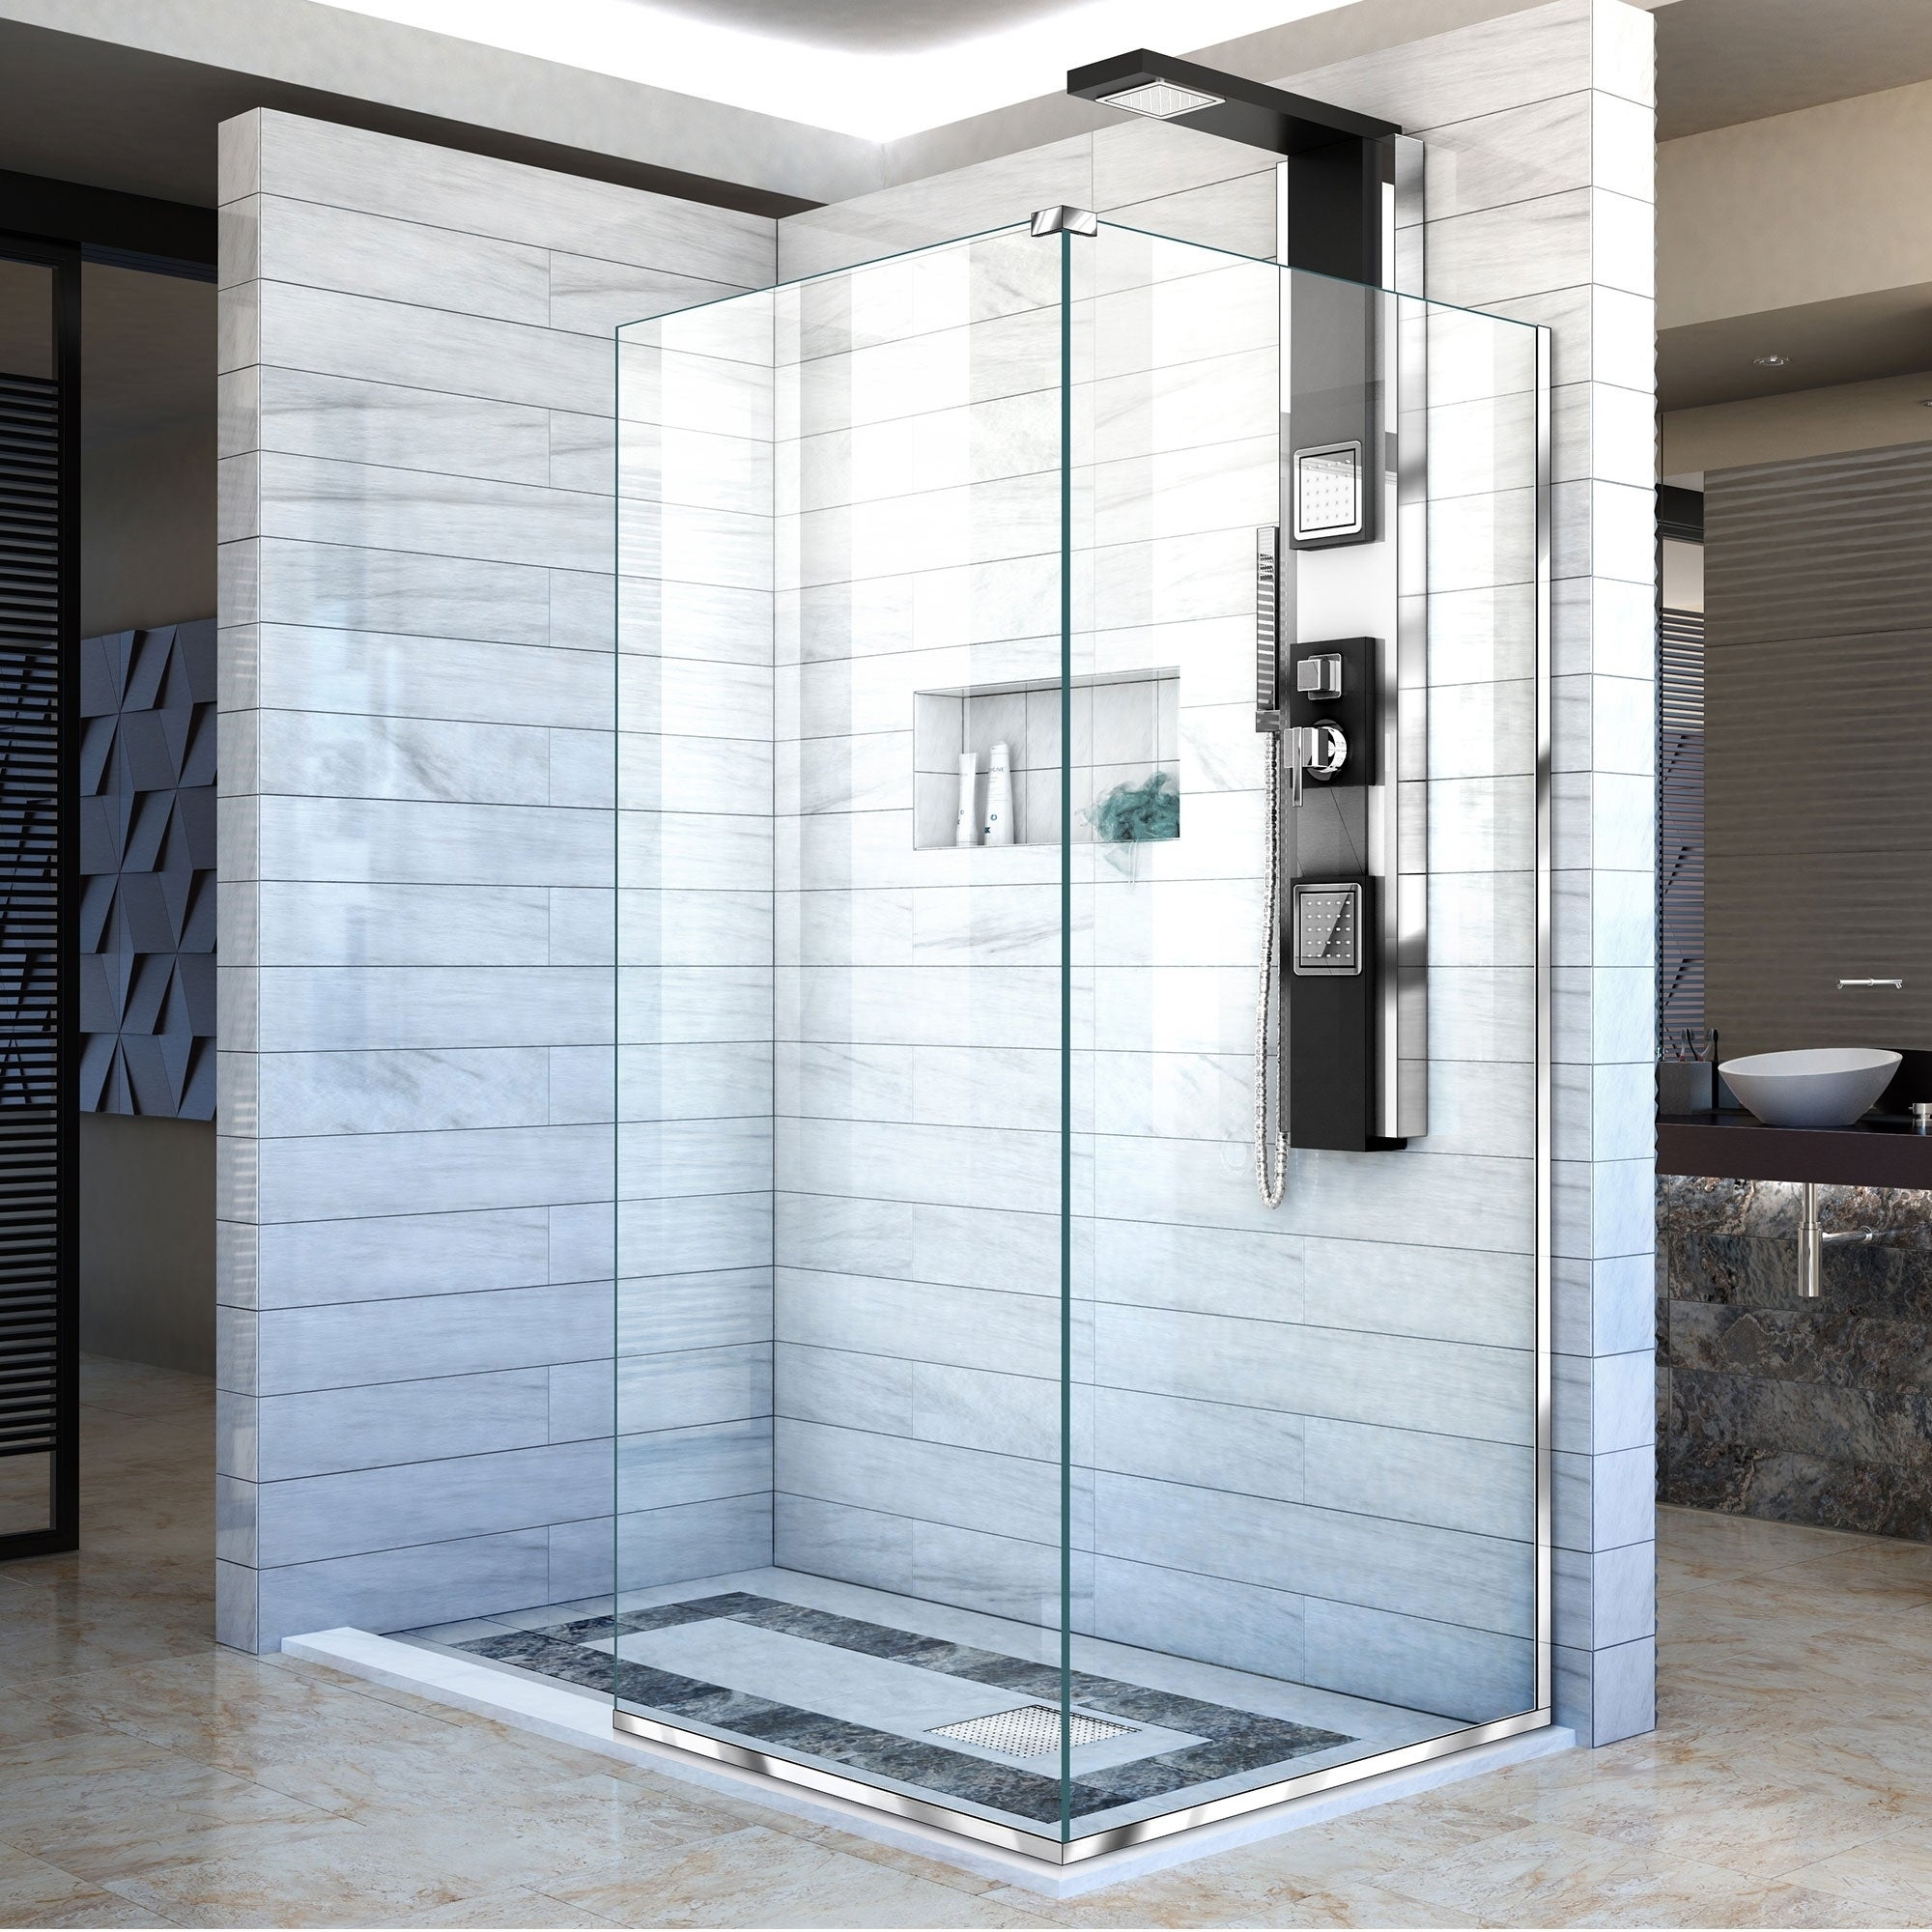 Shop DreamLine Linea Two Adjacent Frameless Shower Screens 34 in. W ...